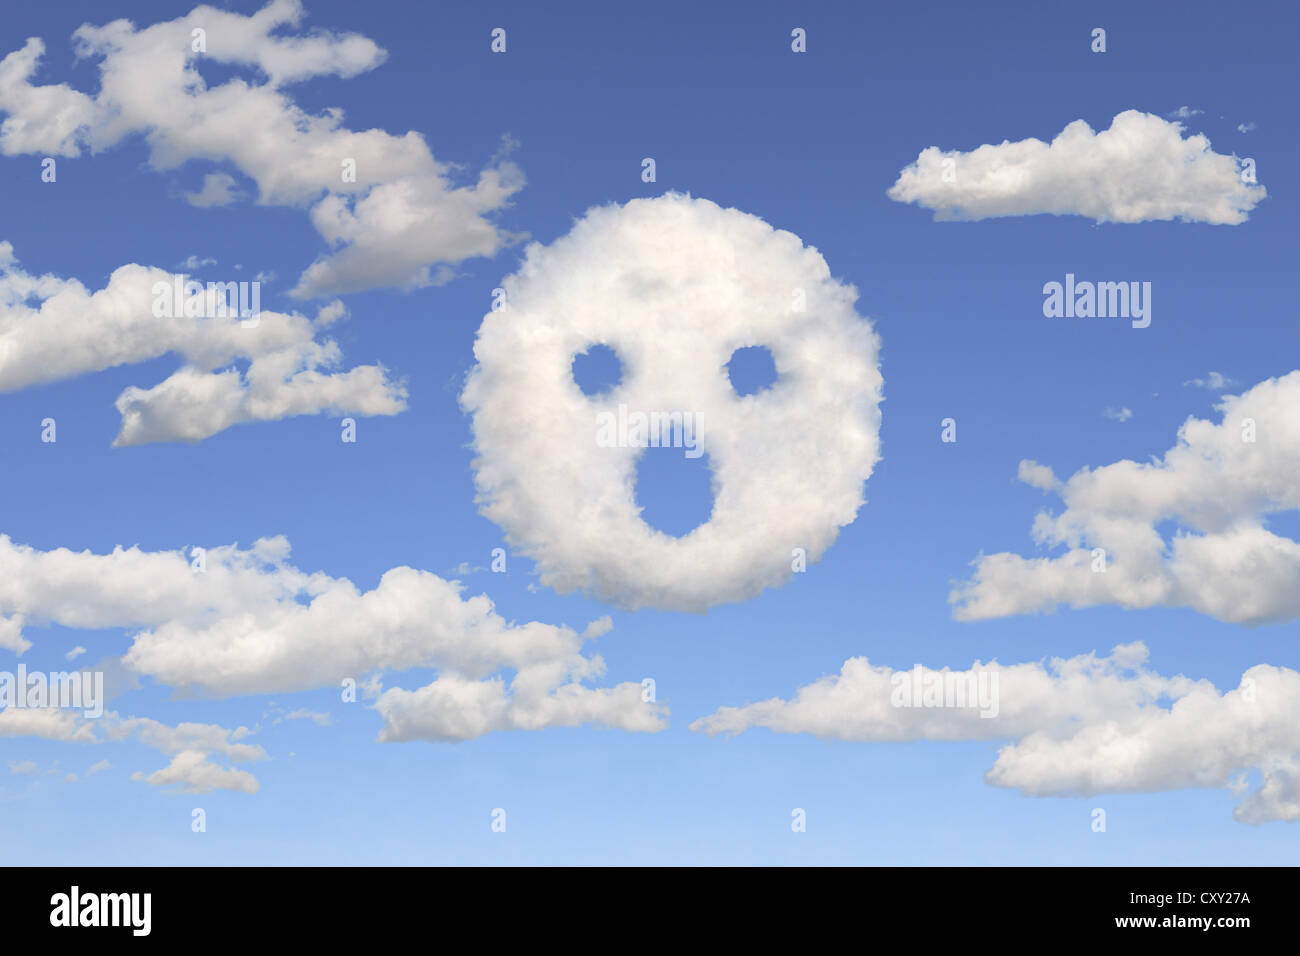 Clouds shaped like an astonished face, illustration - Stock Image